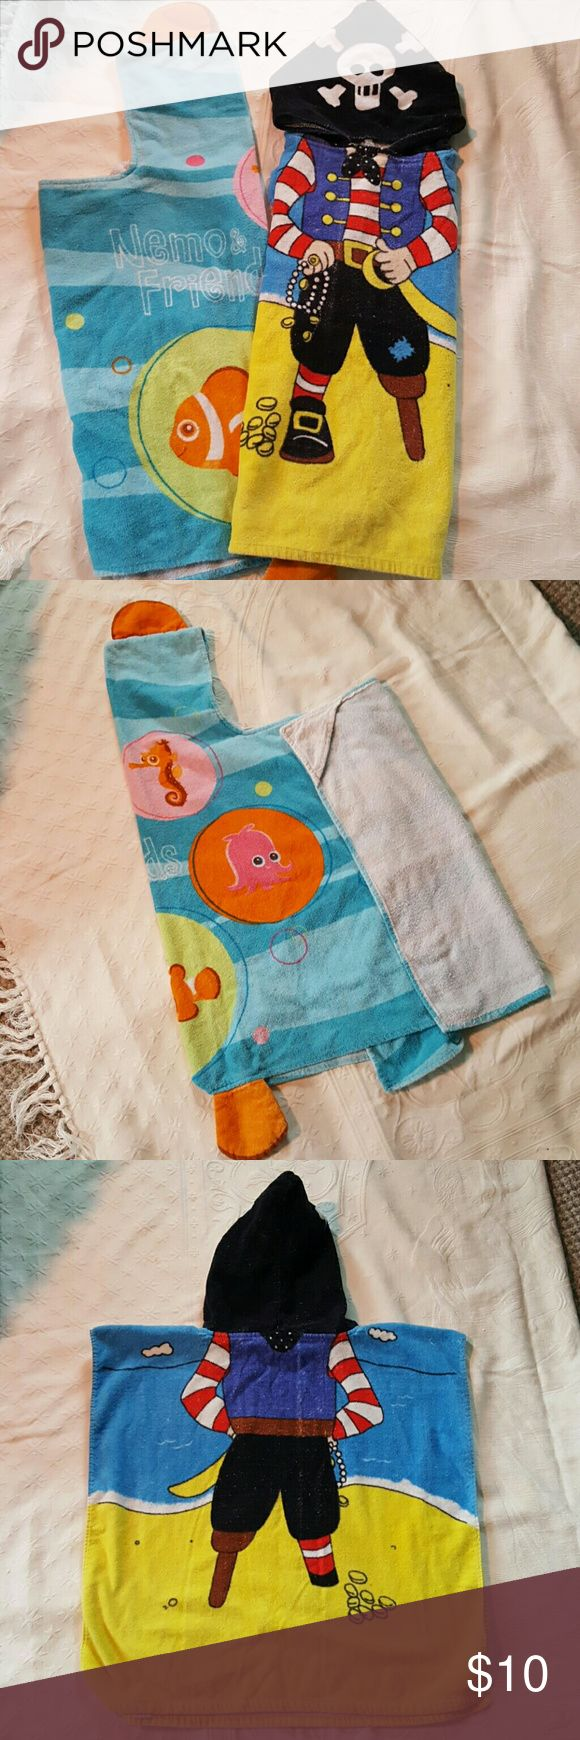 BUNDLE!!Wearable kid's towels 2 super cute wearable towels. One is Poncho Style with a pirate. The other one is Nemo and Friends, has a hood and wraps around the body. Accessories